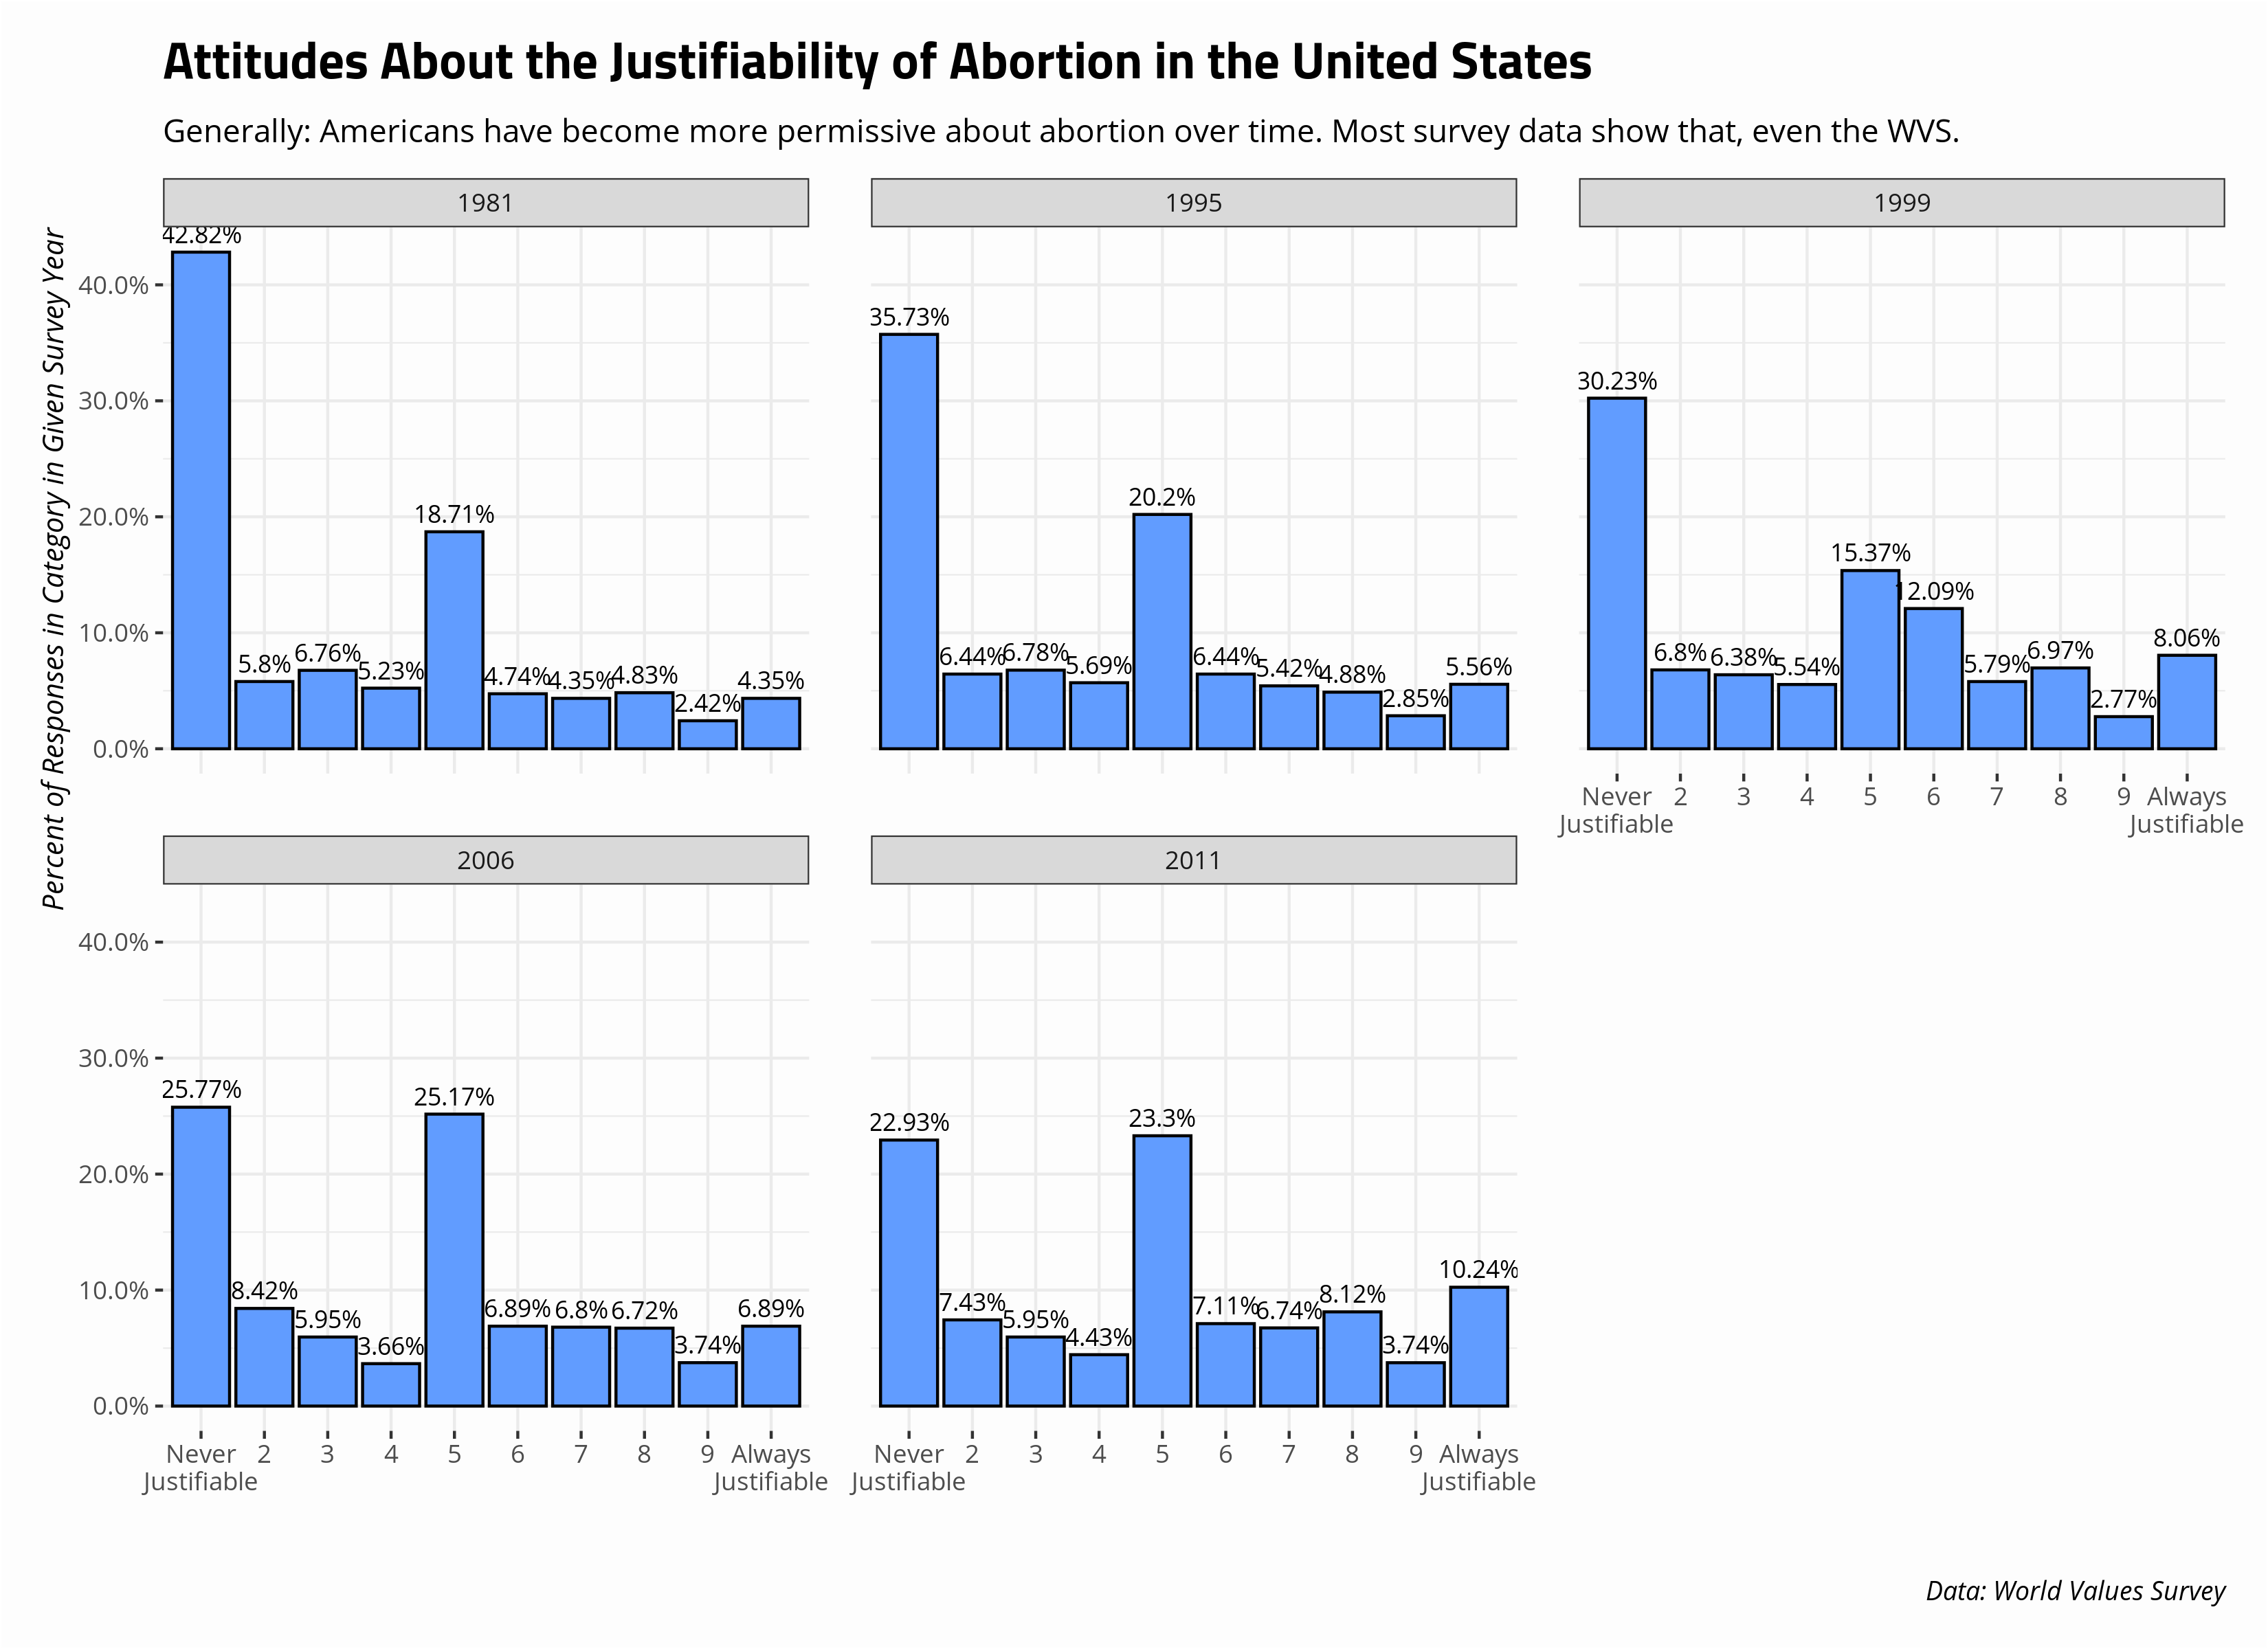 plot of chunk abortion-attitudes-united-states-wvs-1981-2011